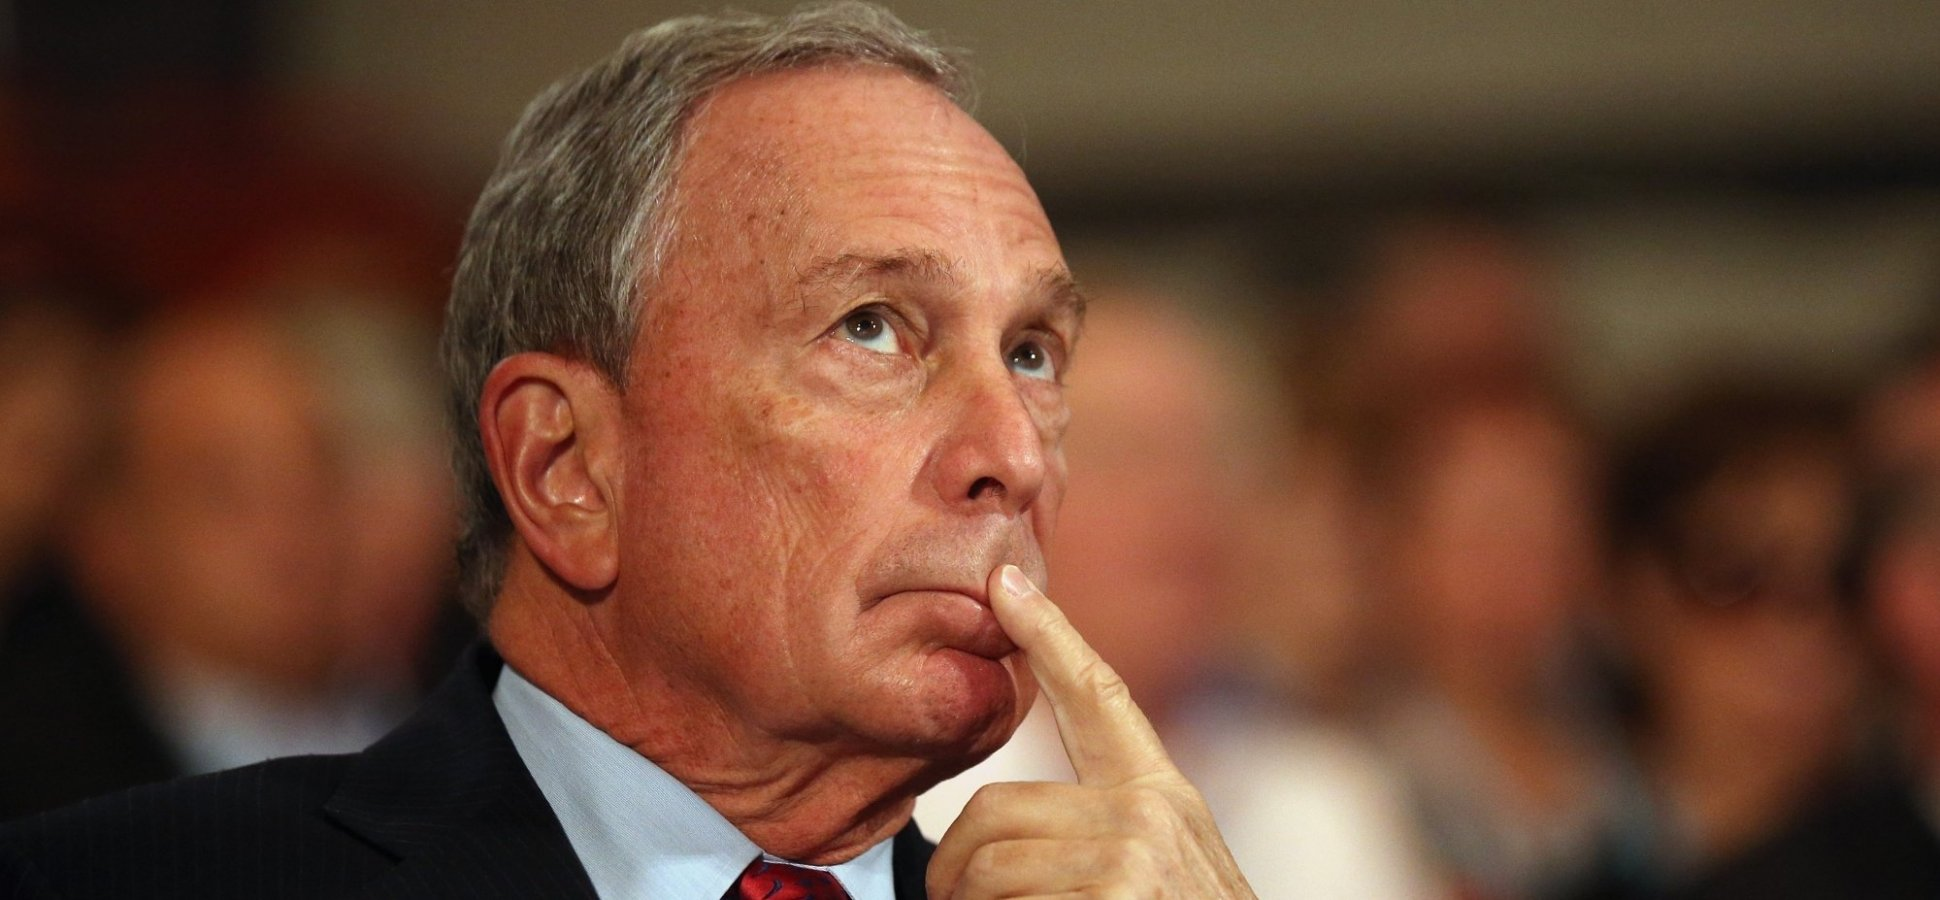 Mike Bloomberg's White House Plan Is Terrible, According to Neuroscientists and Psychologists